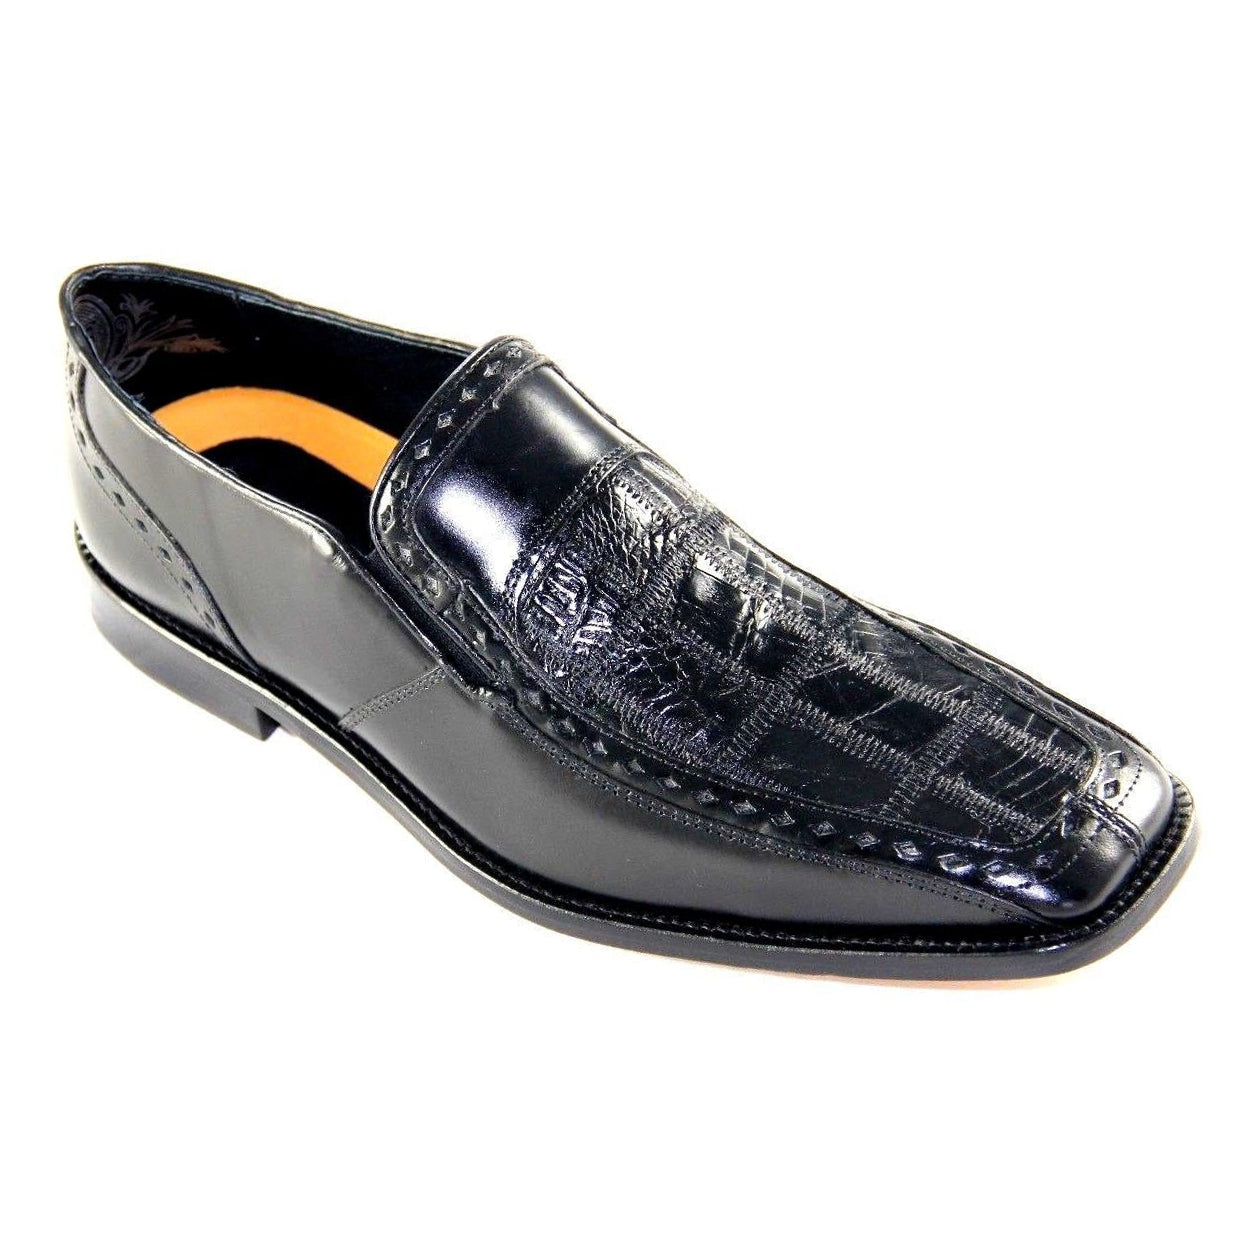 Stacy Adams Galena Genuine Crocodile Square Toe - Black Shoes - Dapperfam.com